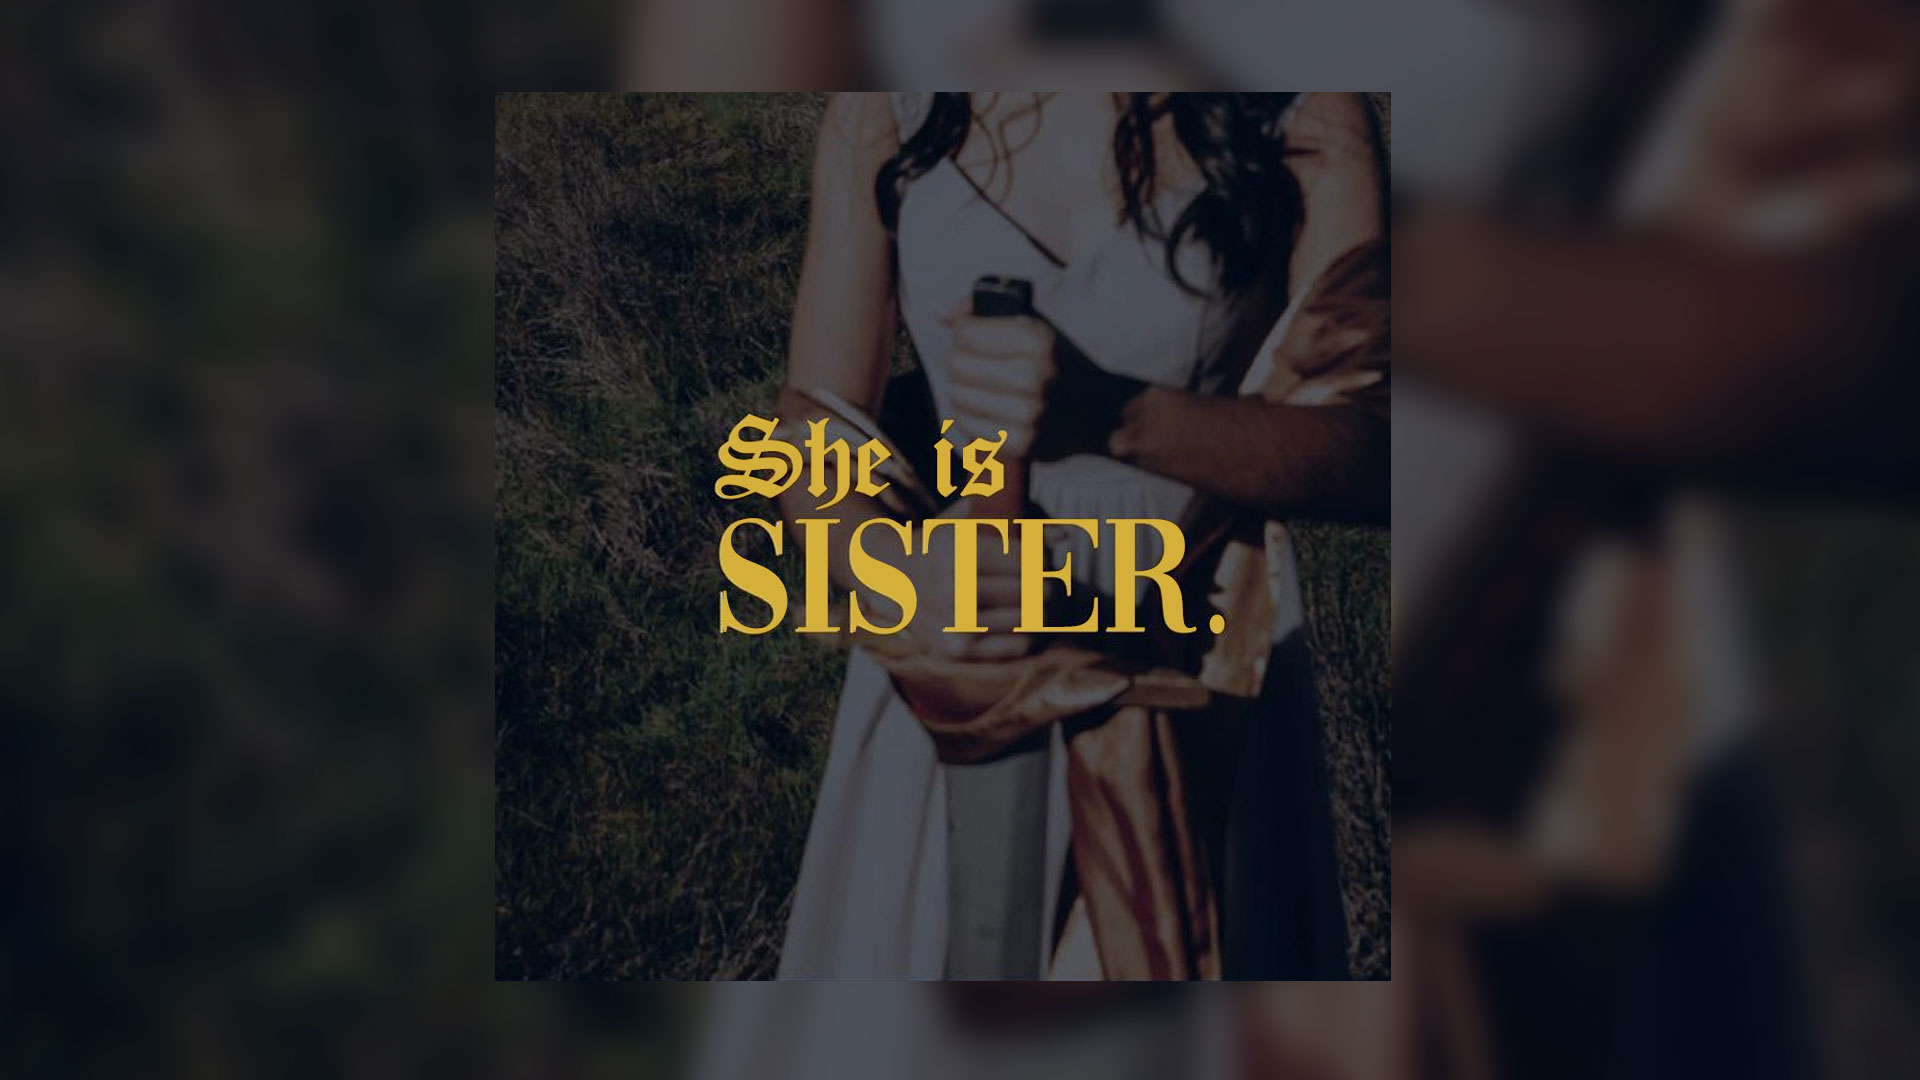 she is sister